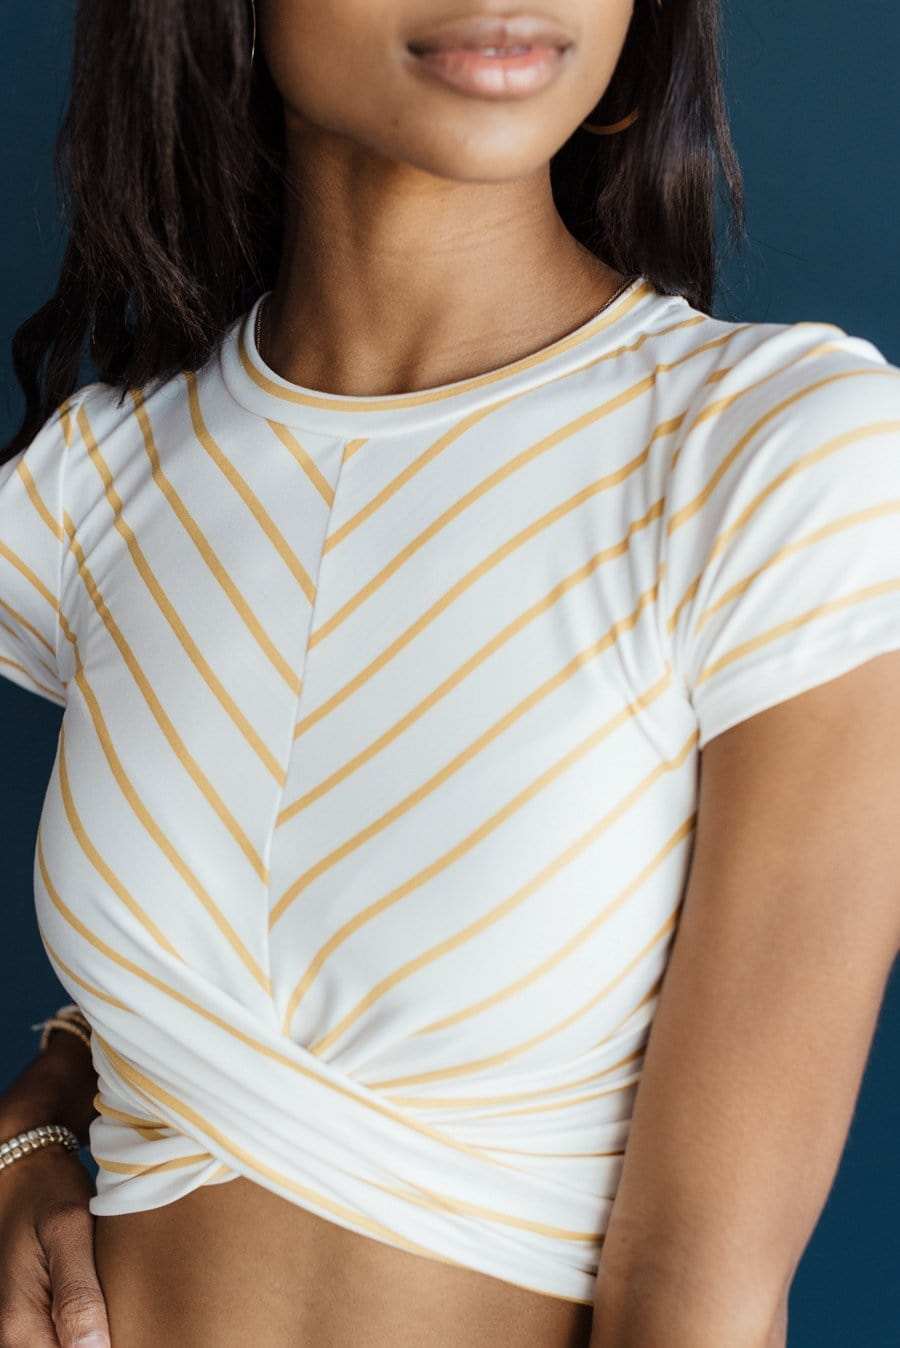 Simply Striped Top - Mustard Stripes